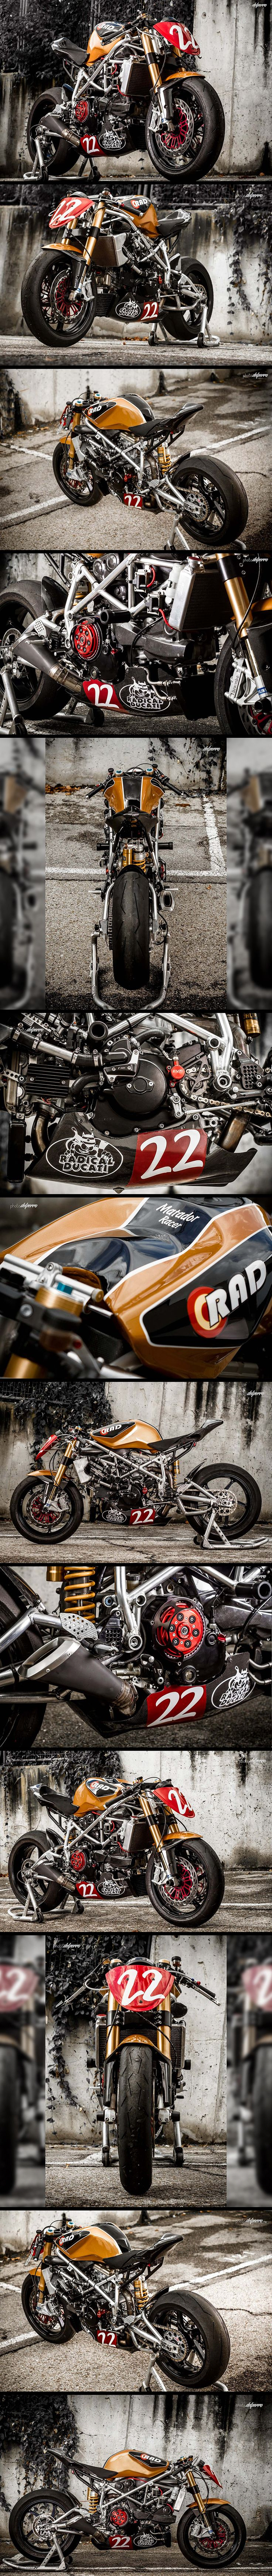 "Ducati 1198 ""The Matador"" by XTR Pepo"